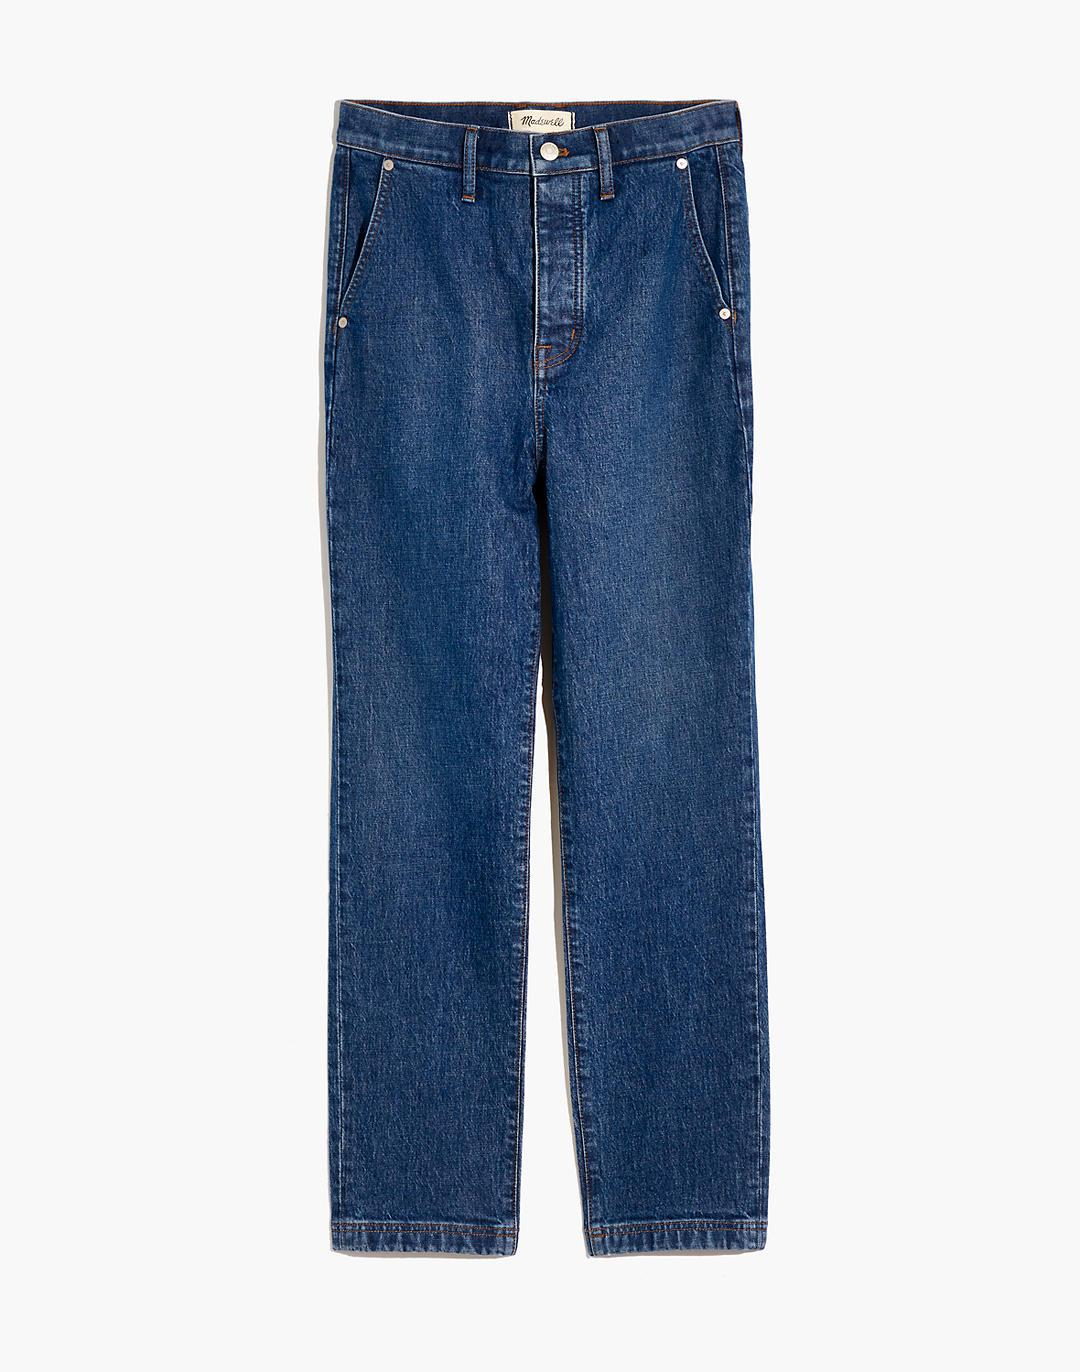 The Perfect Vintage Jean in Minot Wash: Trouser Edition 5